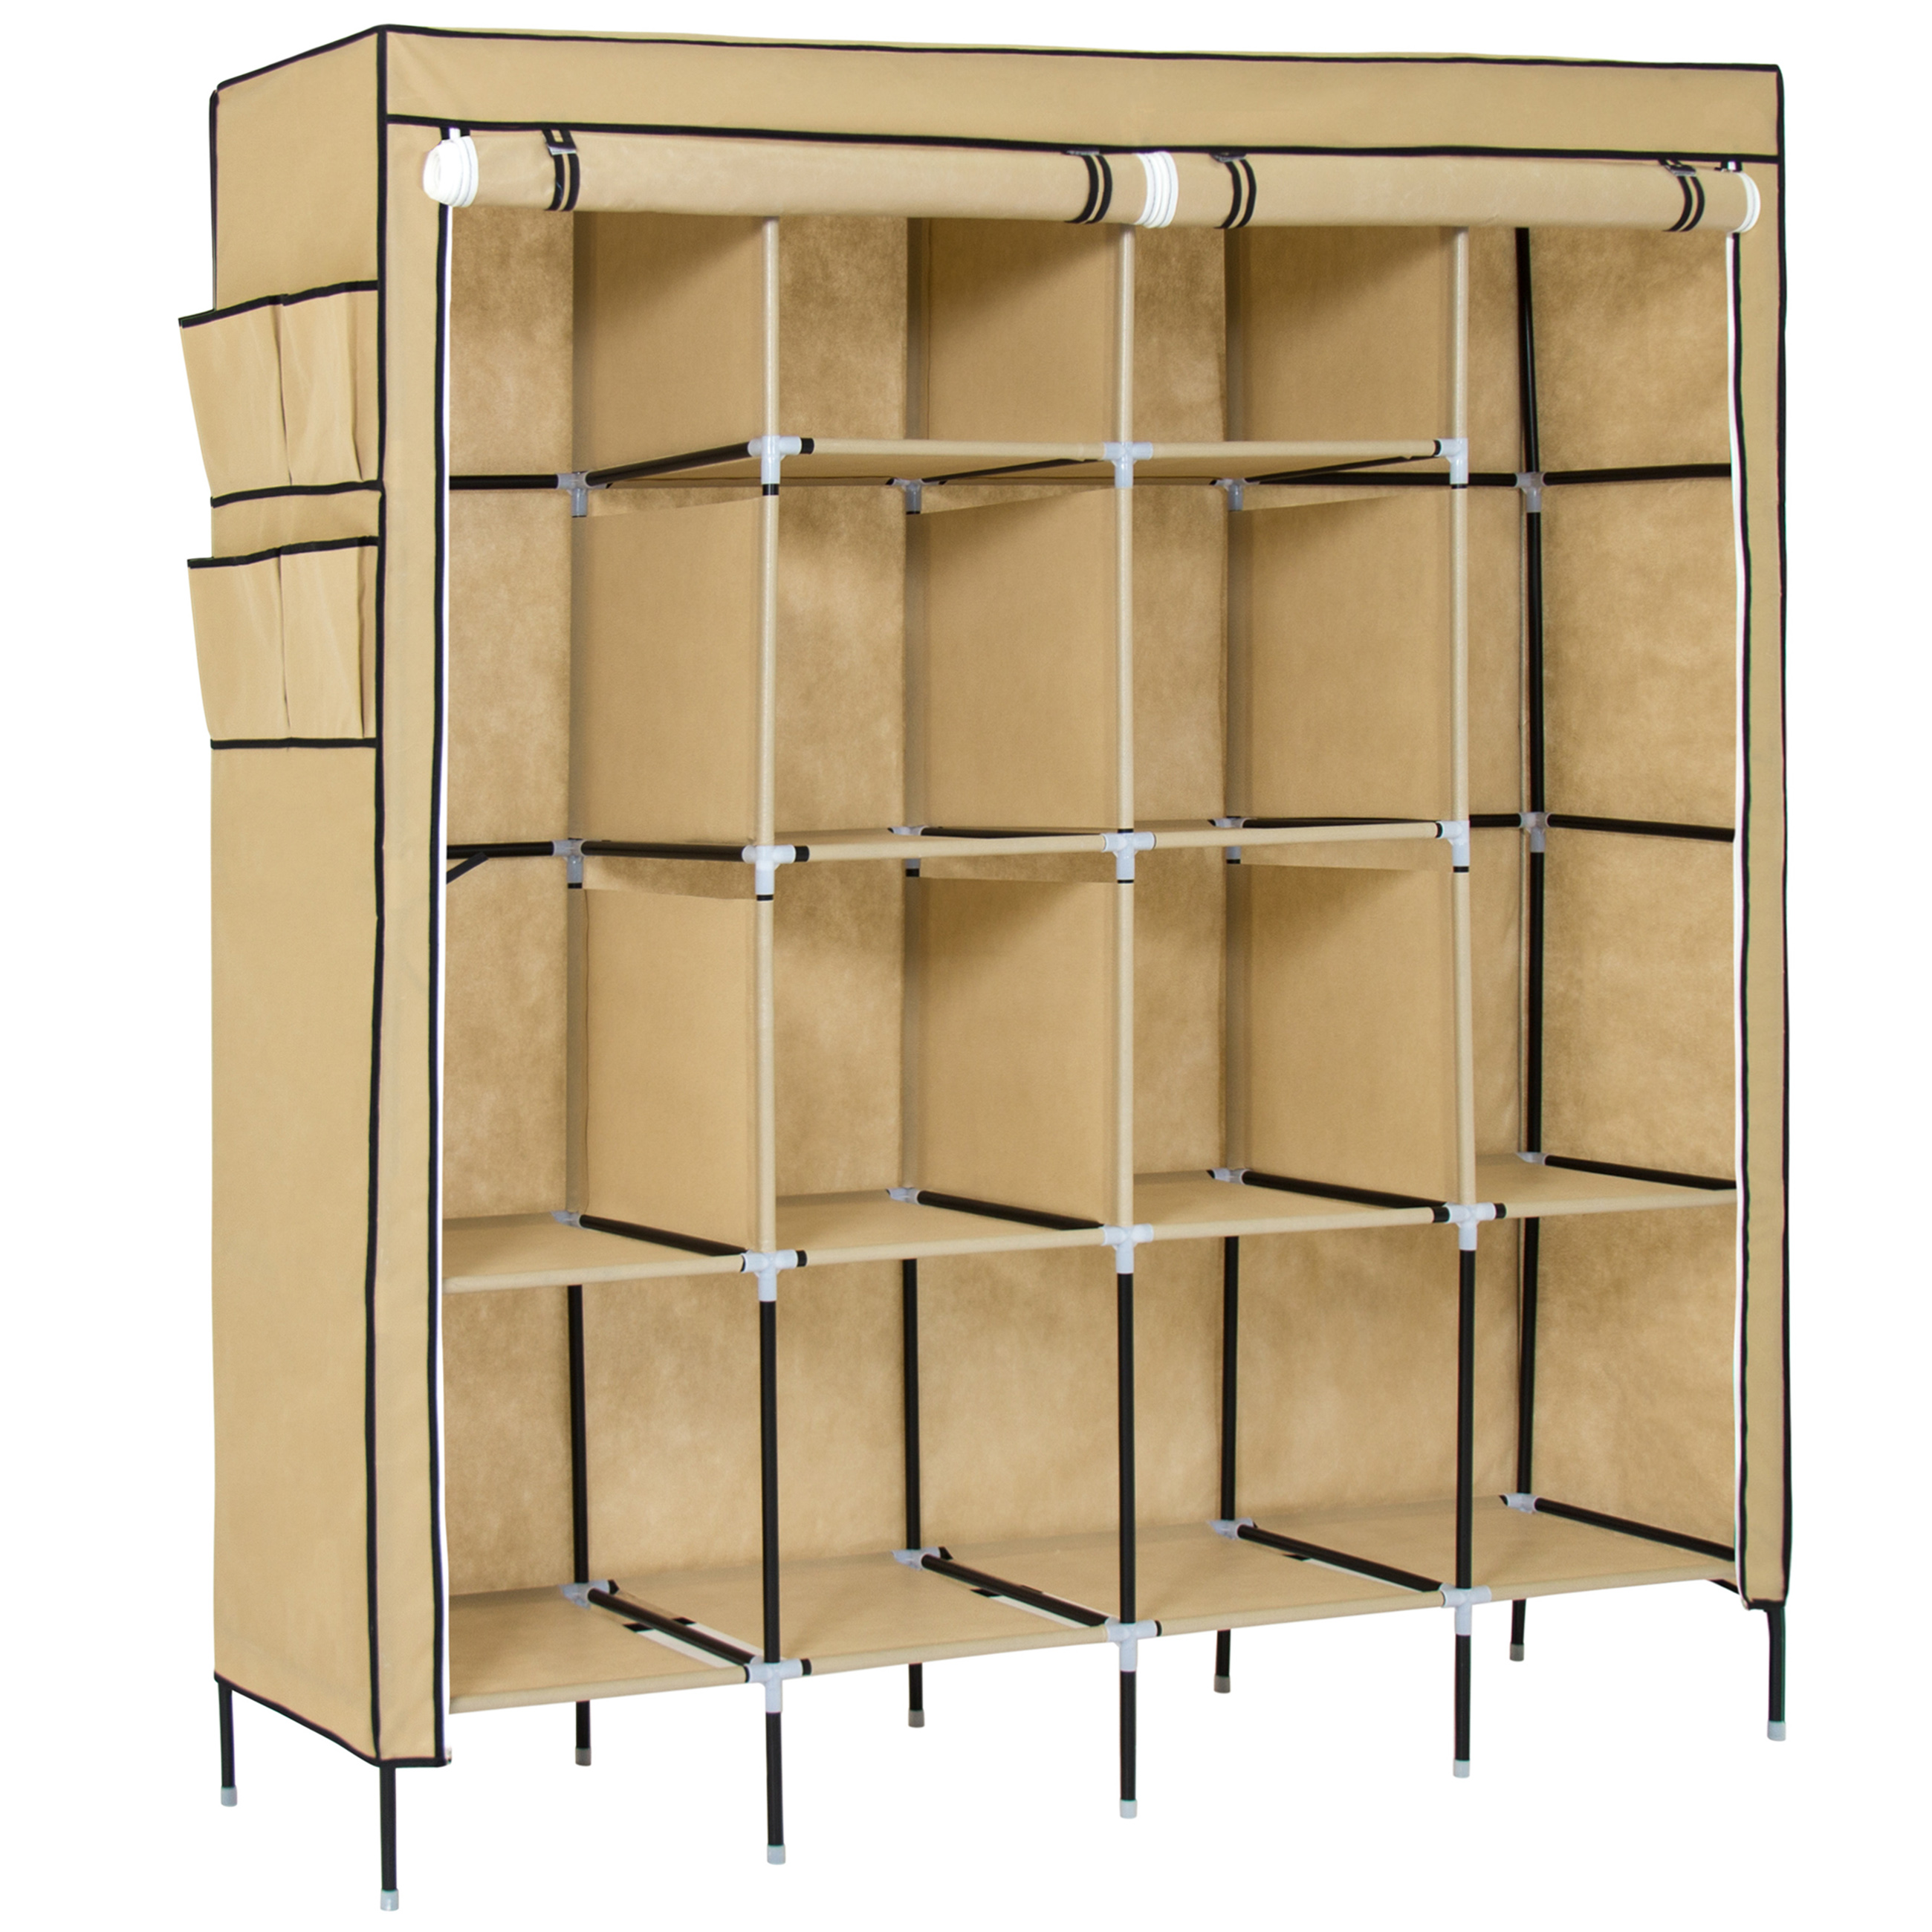 Best Choice Products 12-Shelf Portable Fabric Home Organizer Wardrobe Storage Closet System - Beige